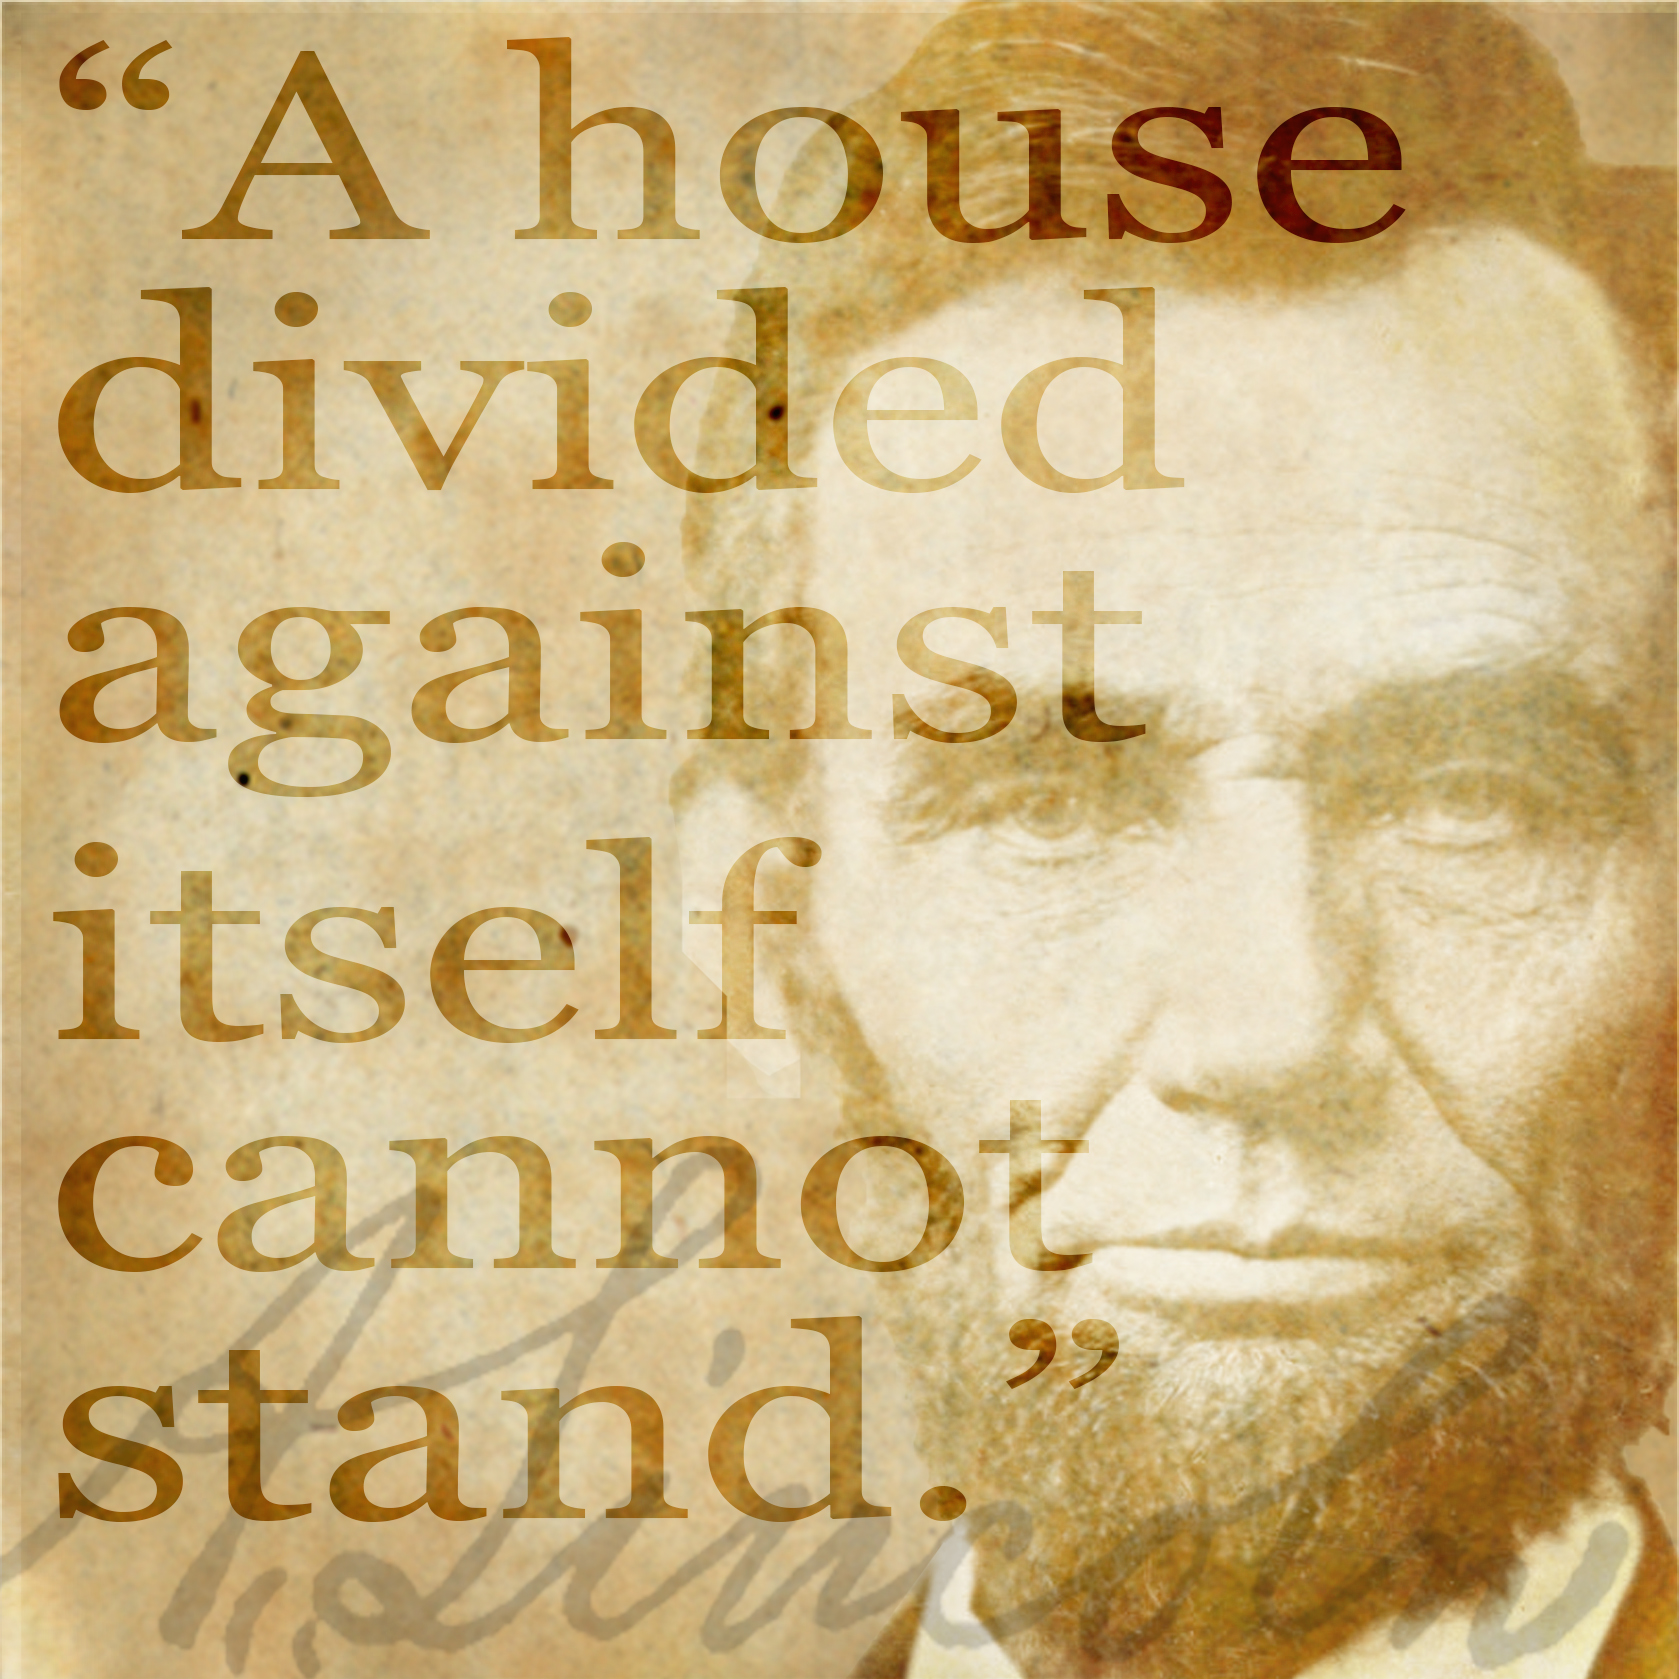 Quotes about family divided